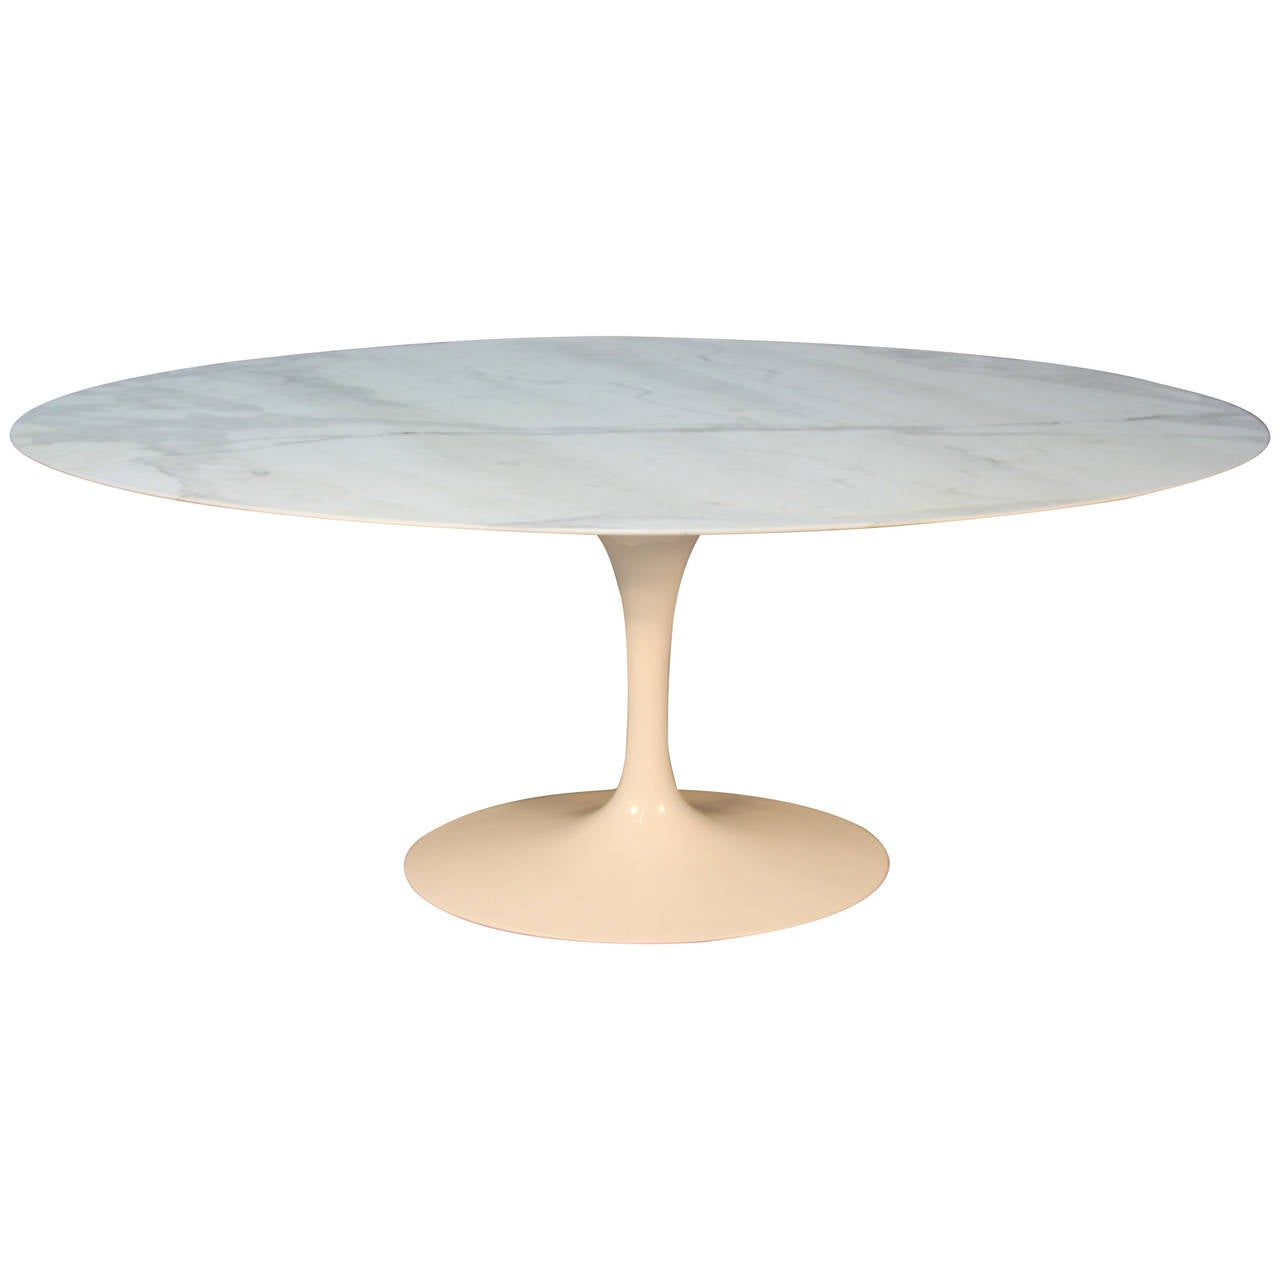 Dining Table Marble Top Coaster Telegraph Marble Top  : 3144142l from amlibgroup.com size 1280 x 1280 jpeg 28kB